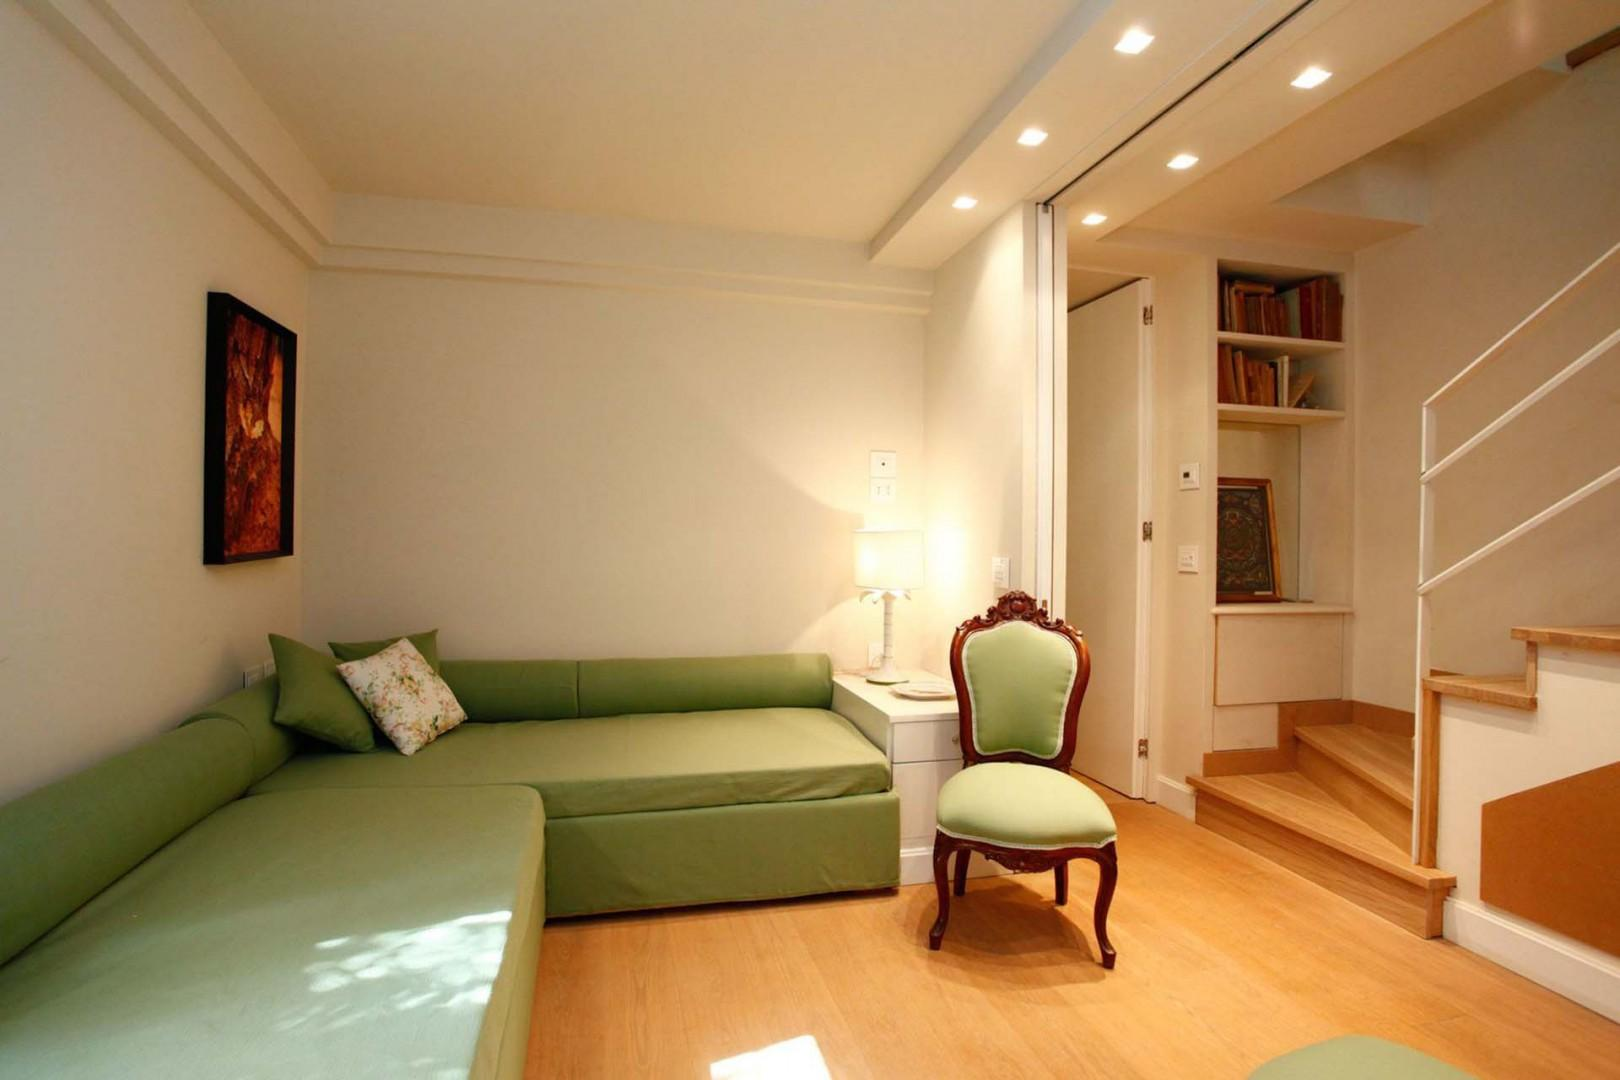 This space can be used as a lower level living room or bedroom with two day beds.